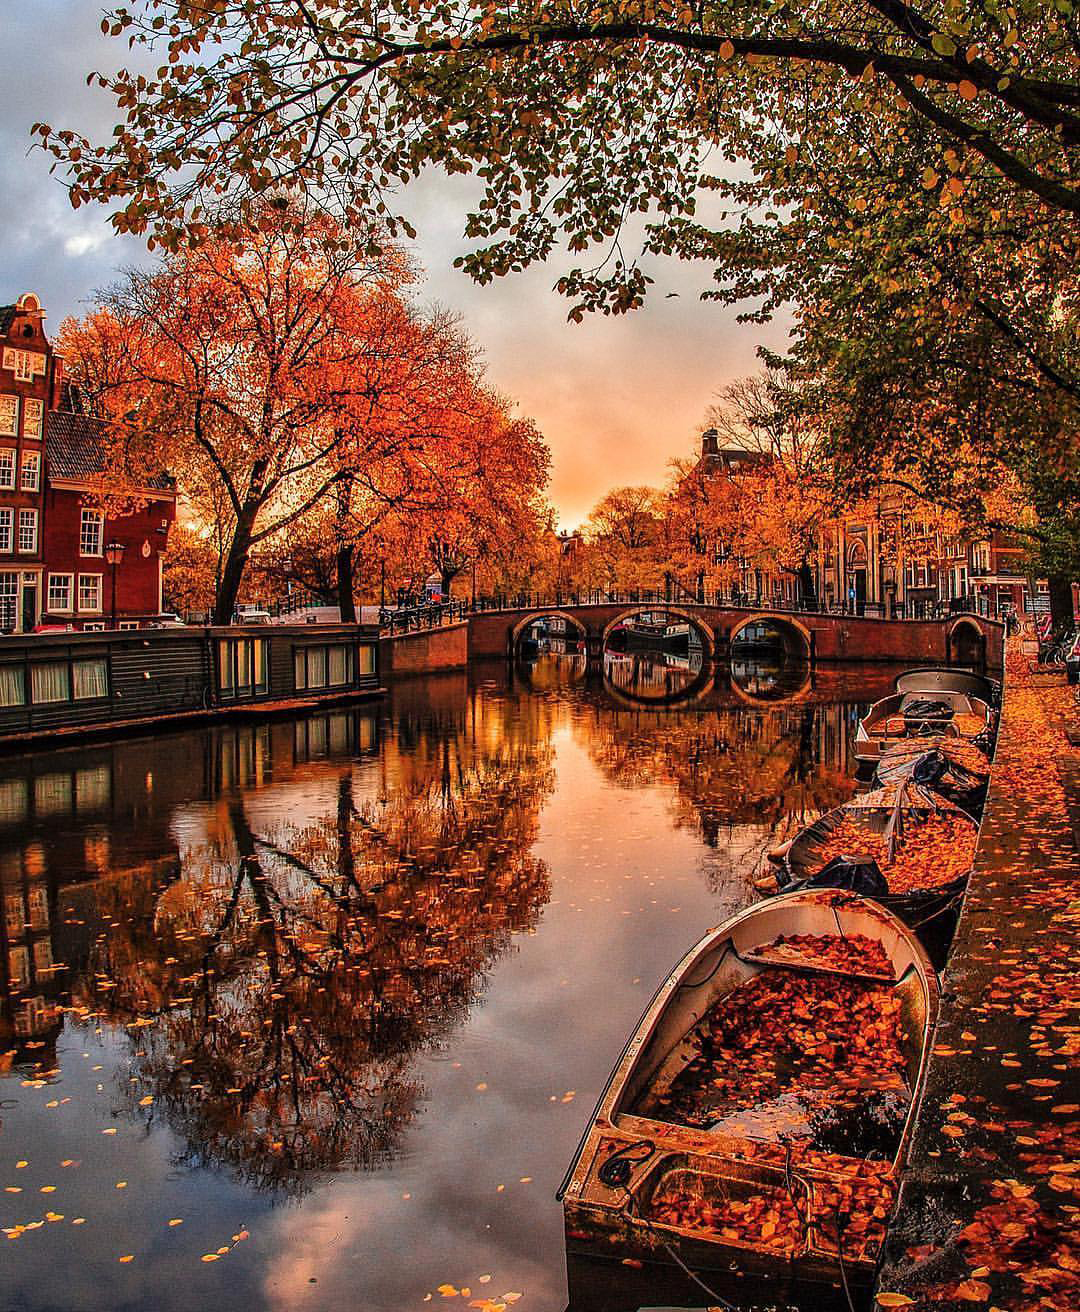 Amsterdam in the Fall | Karinal Melon on Instagram